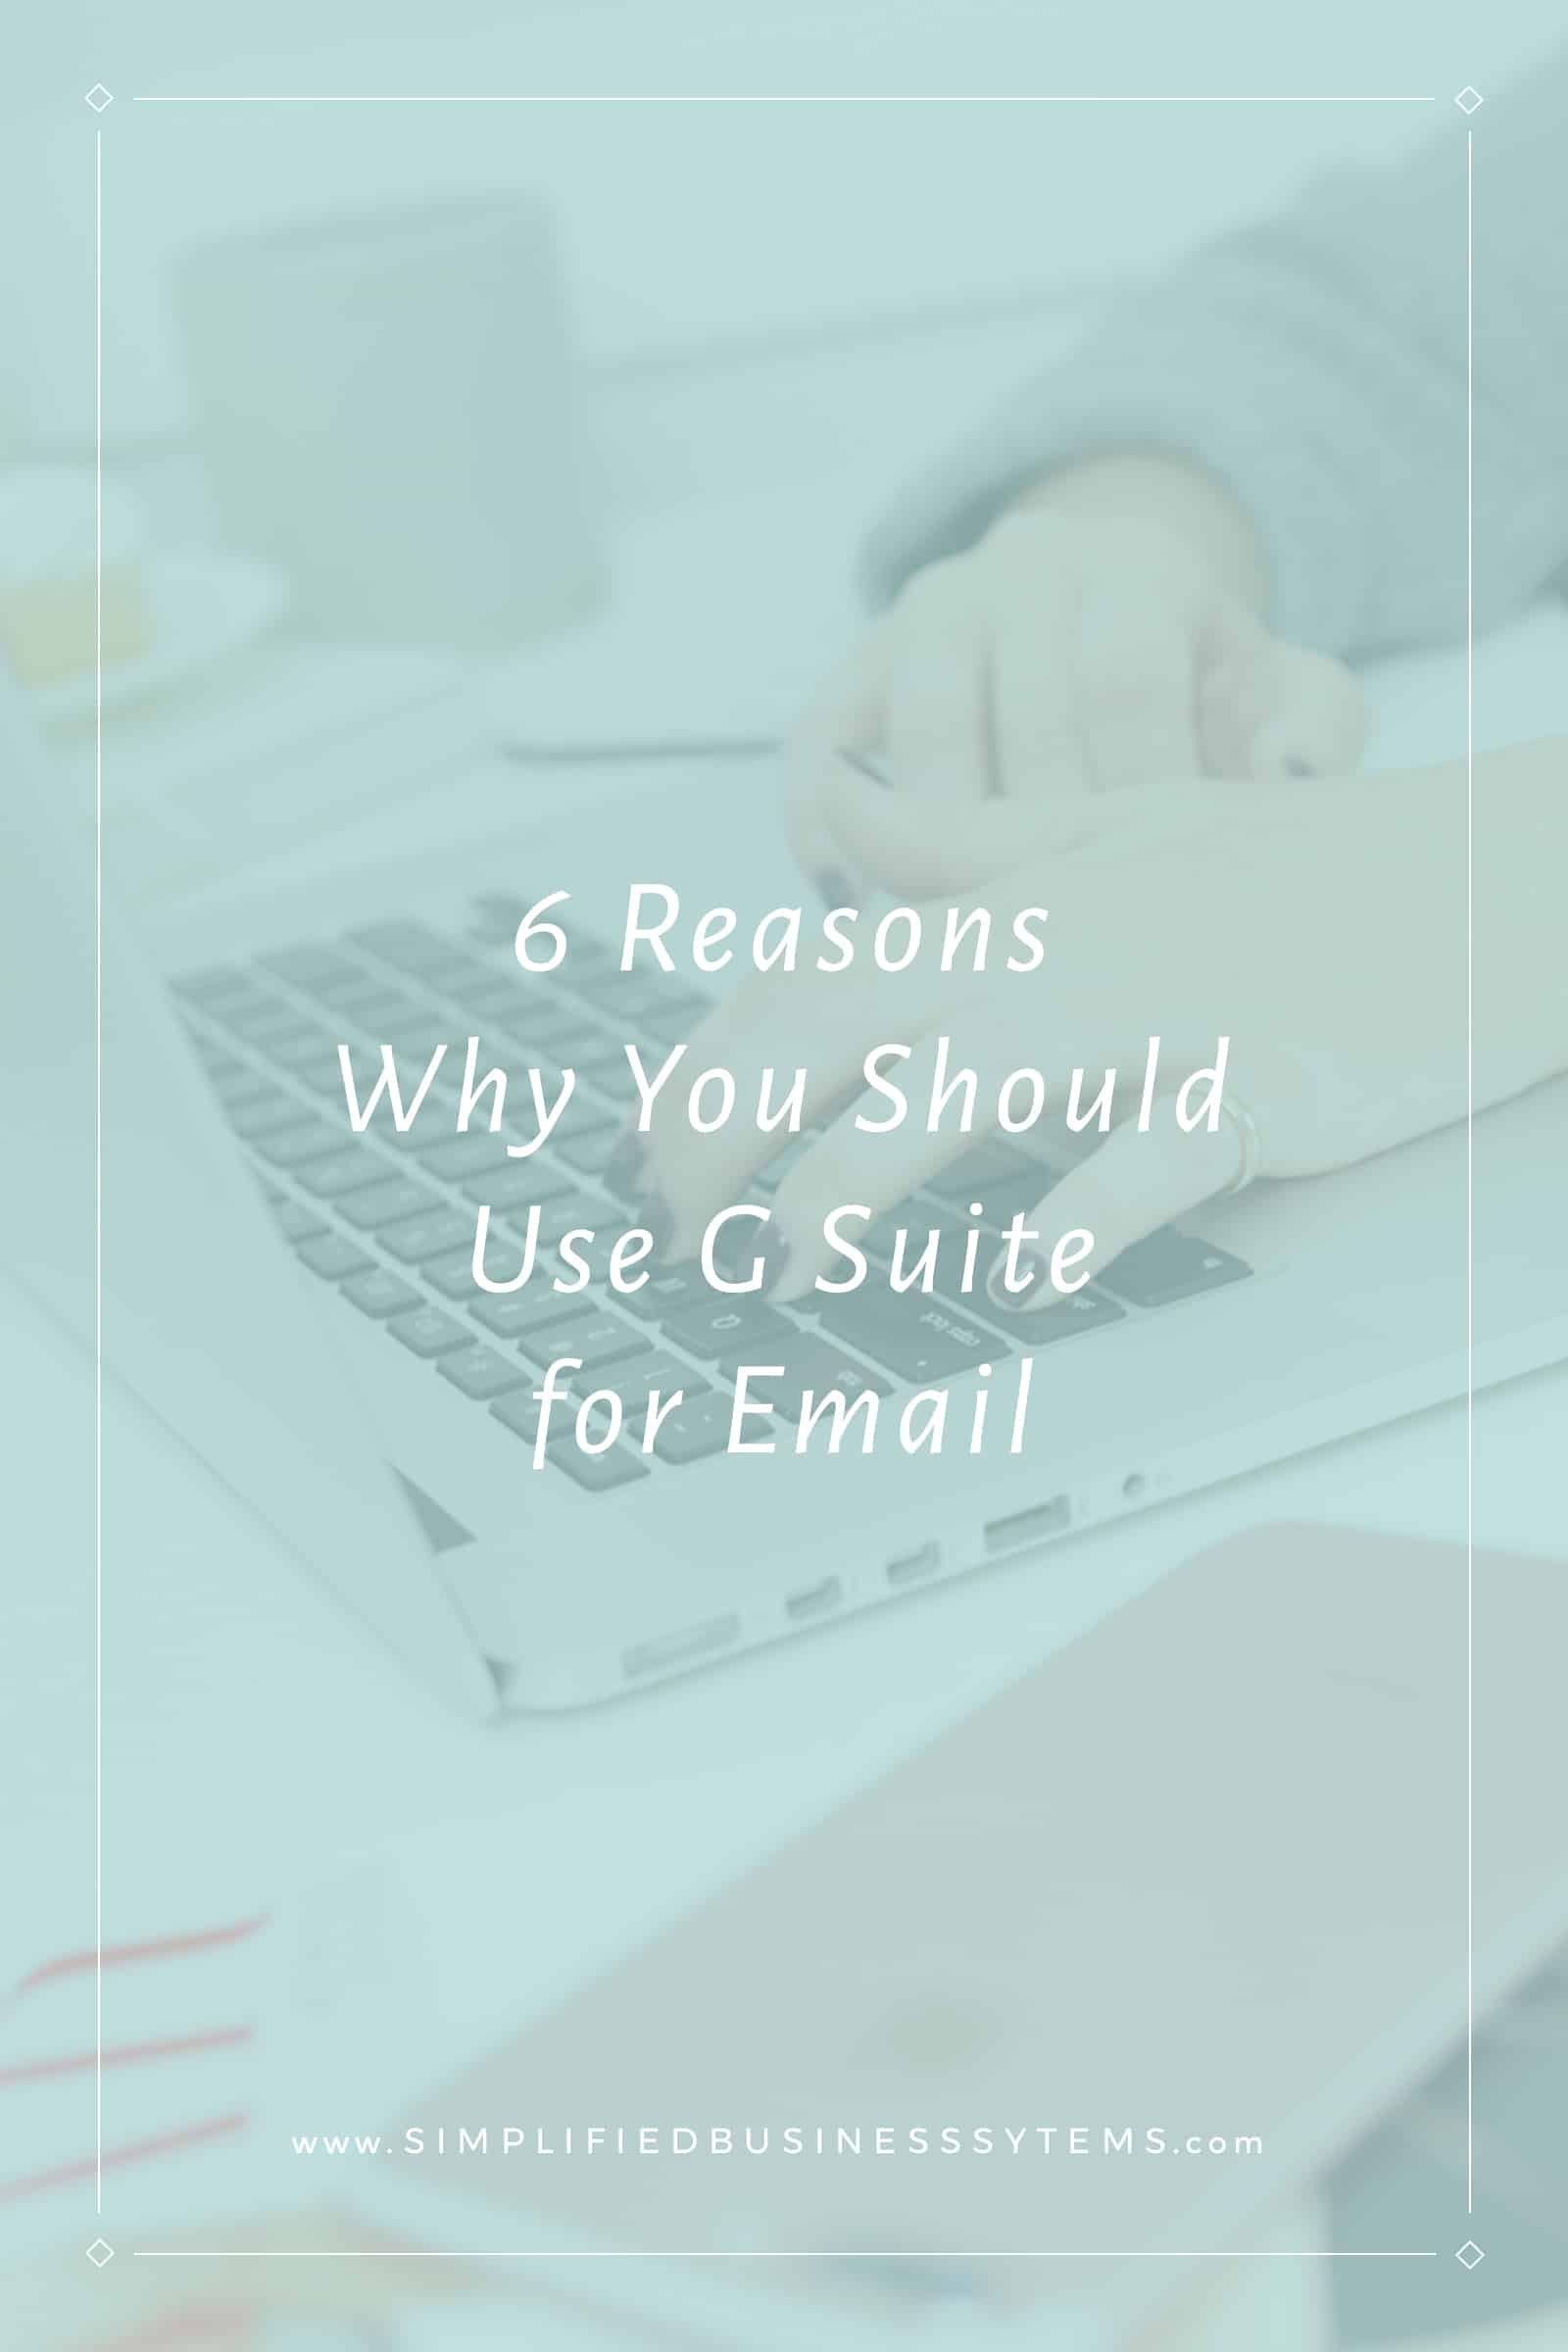 6 Reasons Why You Should Use G Suite for Email